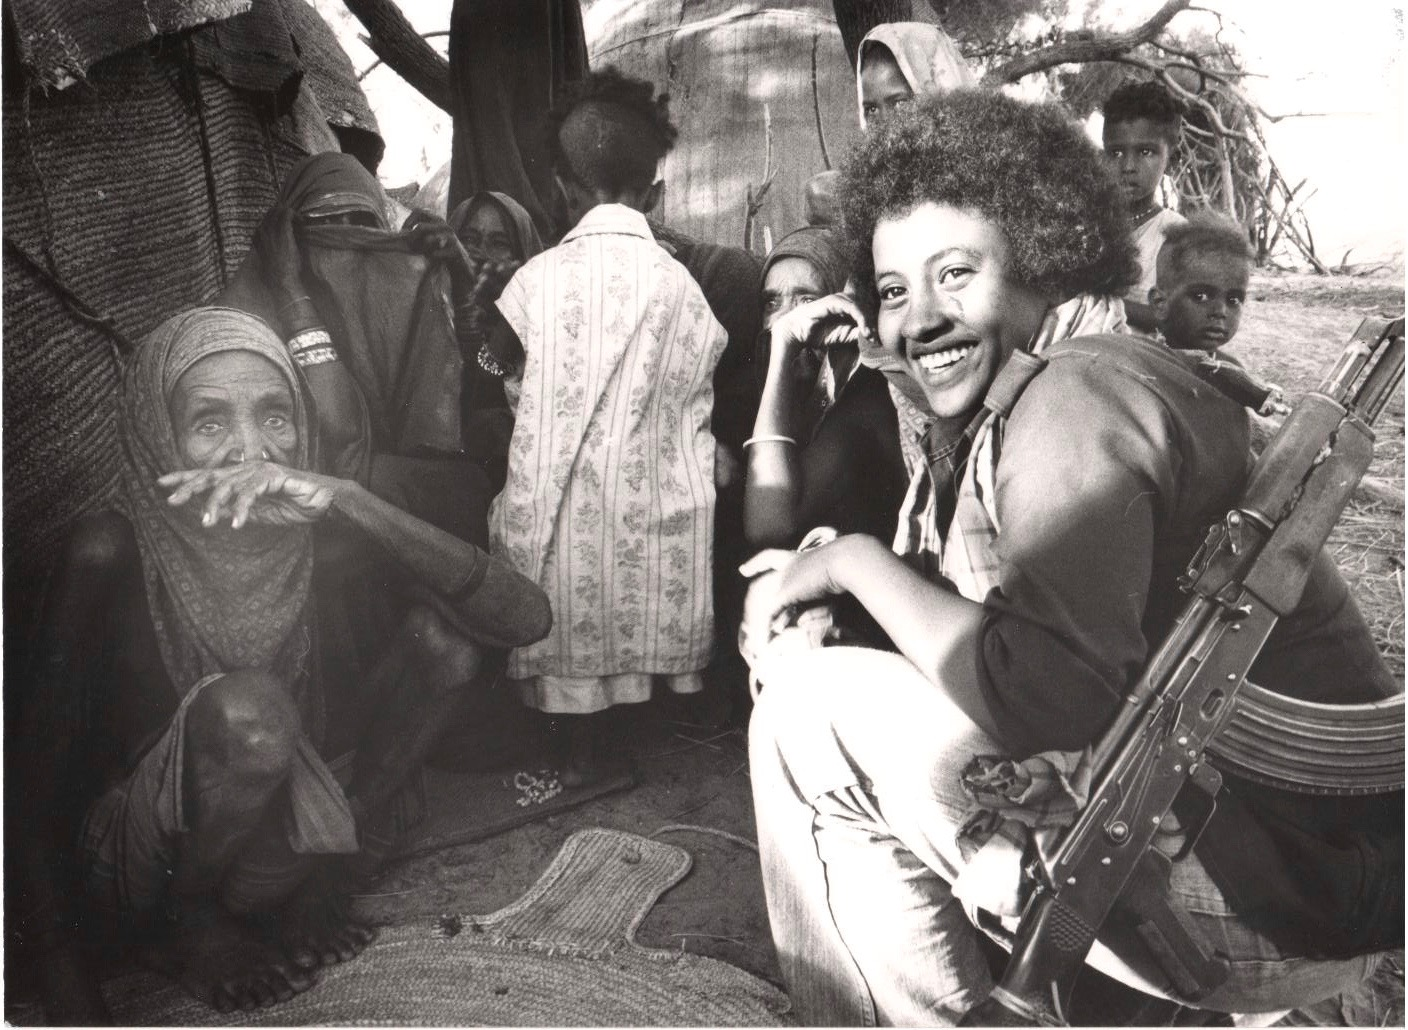 Eritrean woman fighter chatting with women in Ado Okut village in Barka